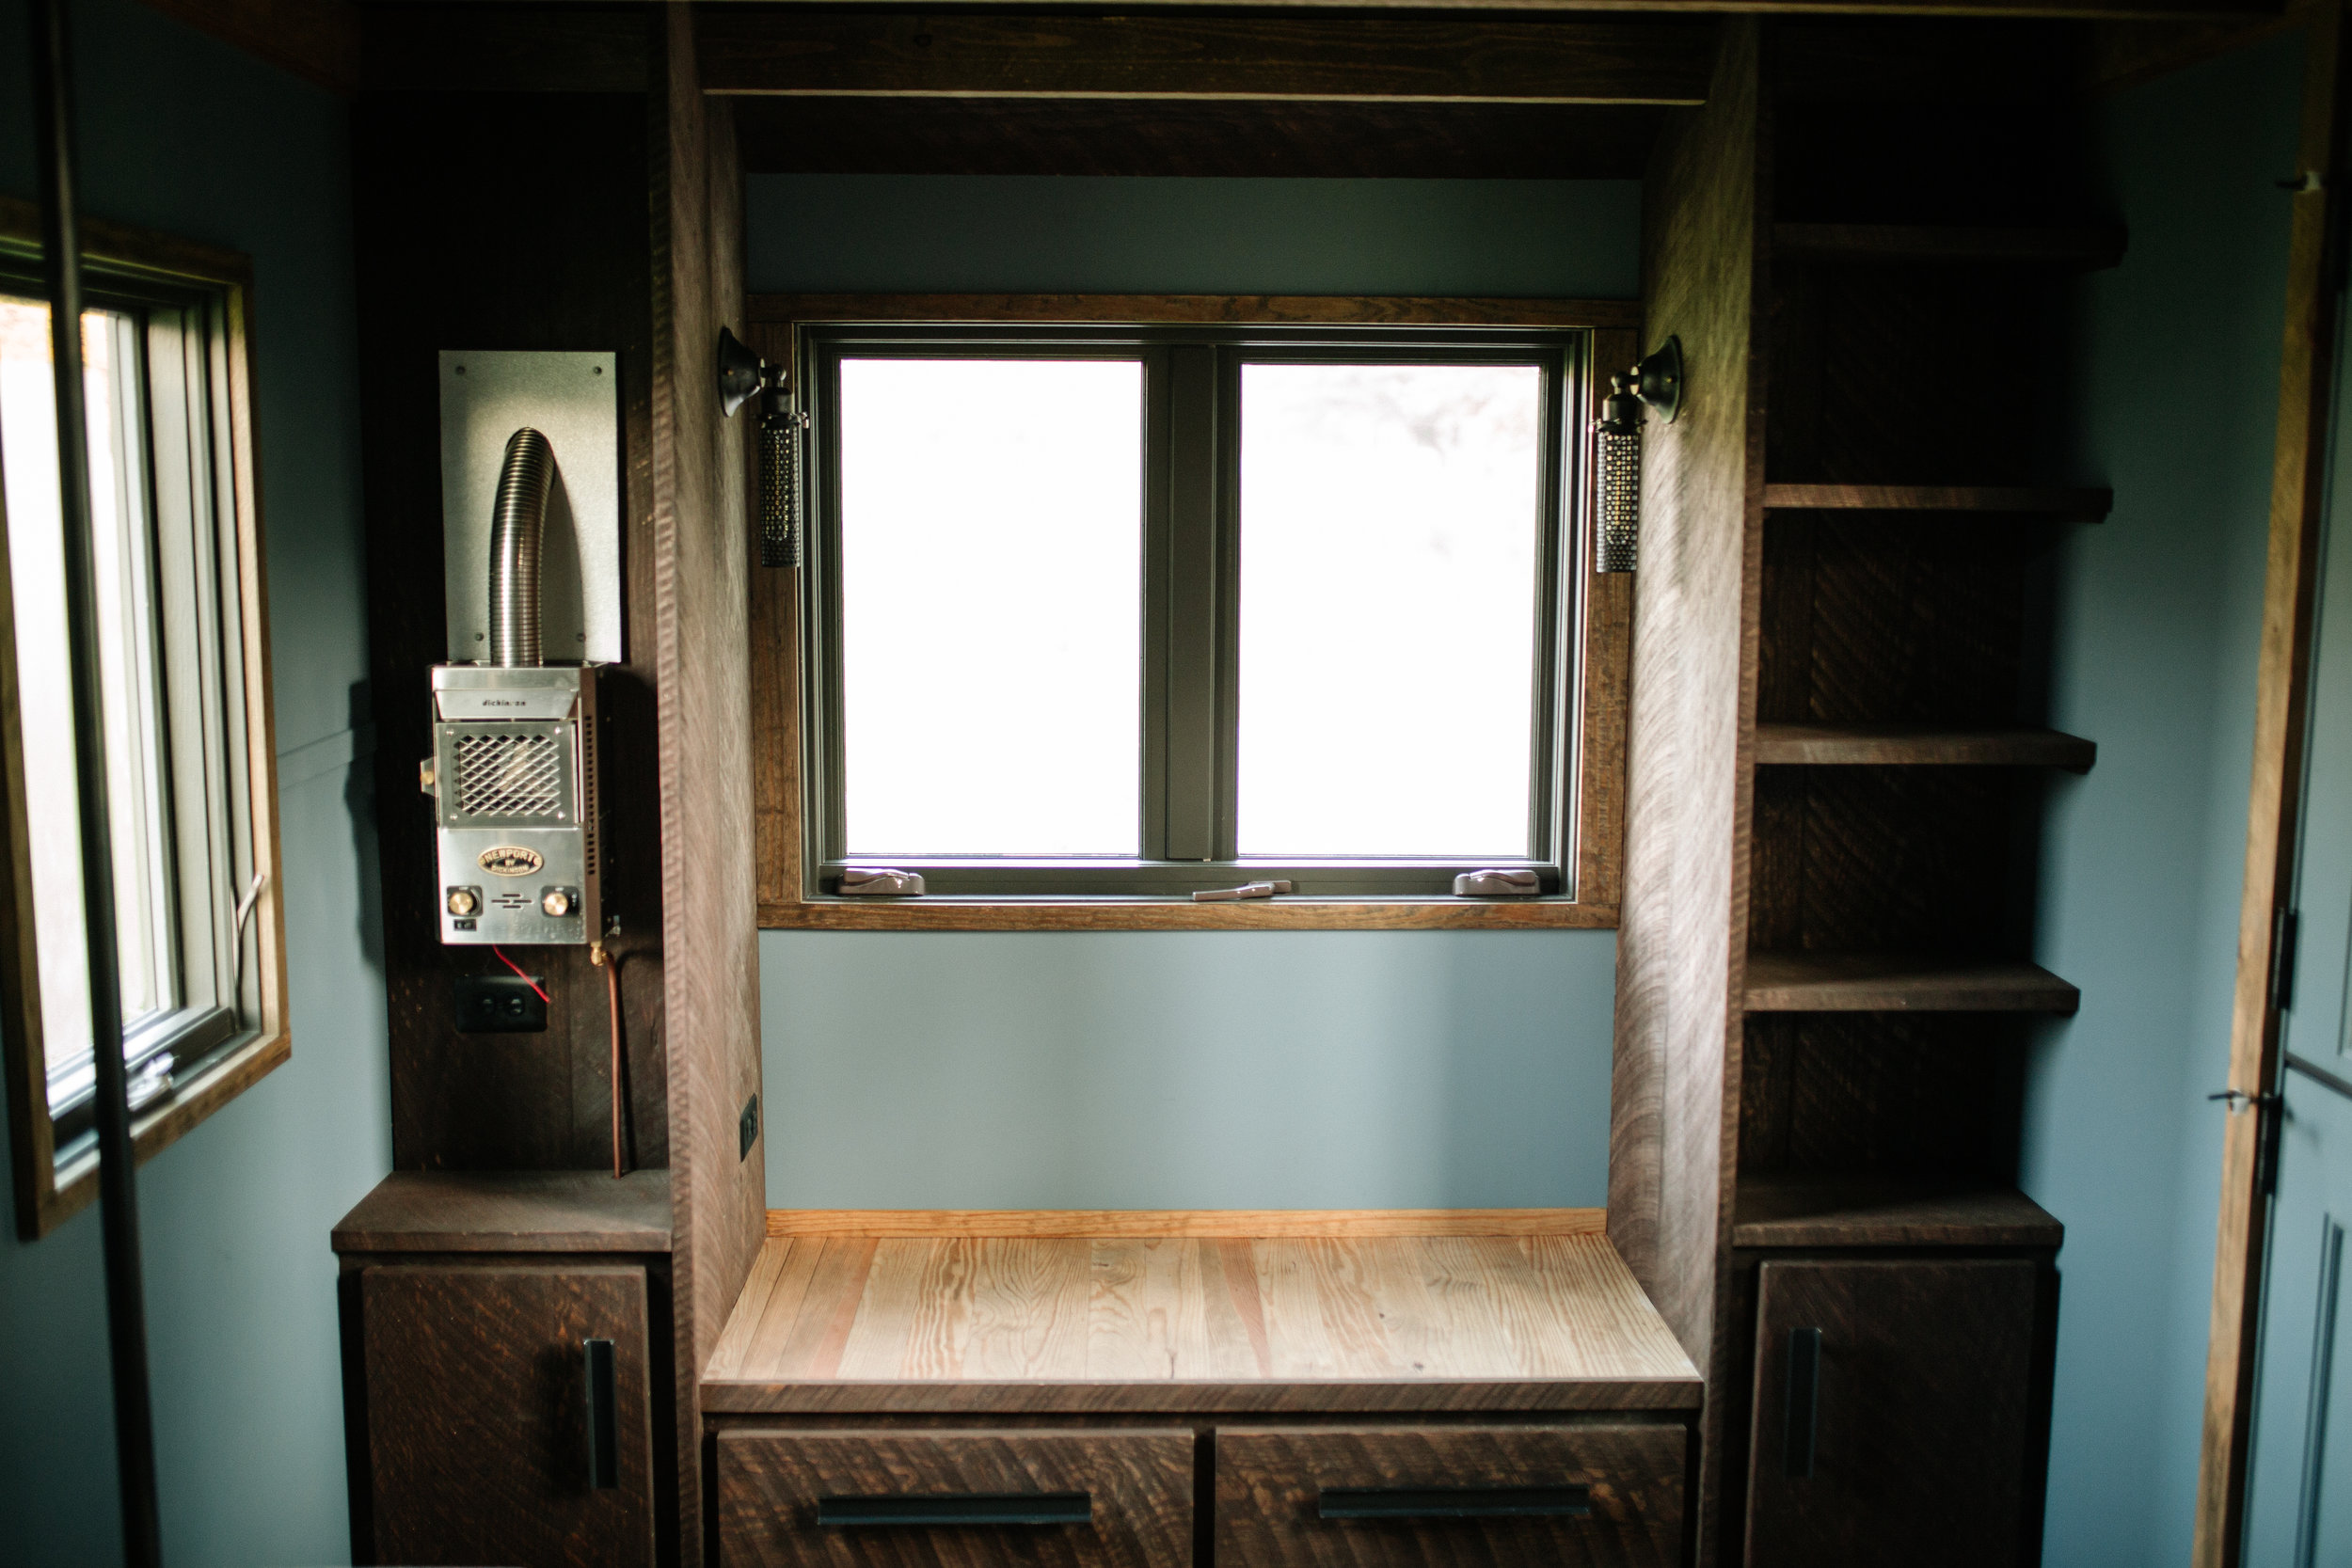 The Rook by Wind River Tiny Homes - Dickinson propane heater, built in window seat couch with built in side shelving.